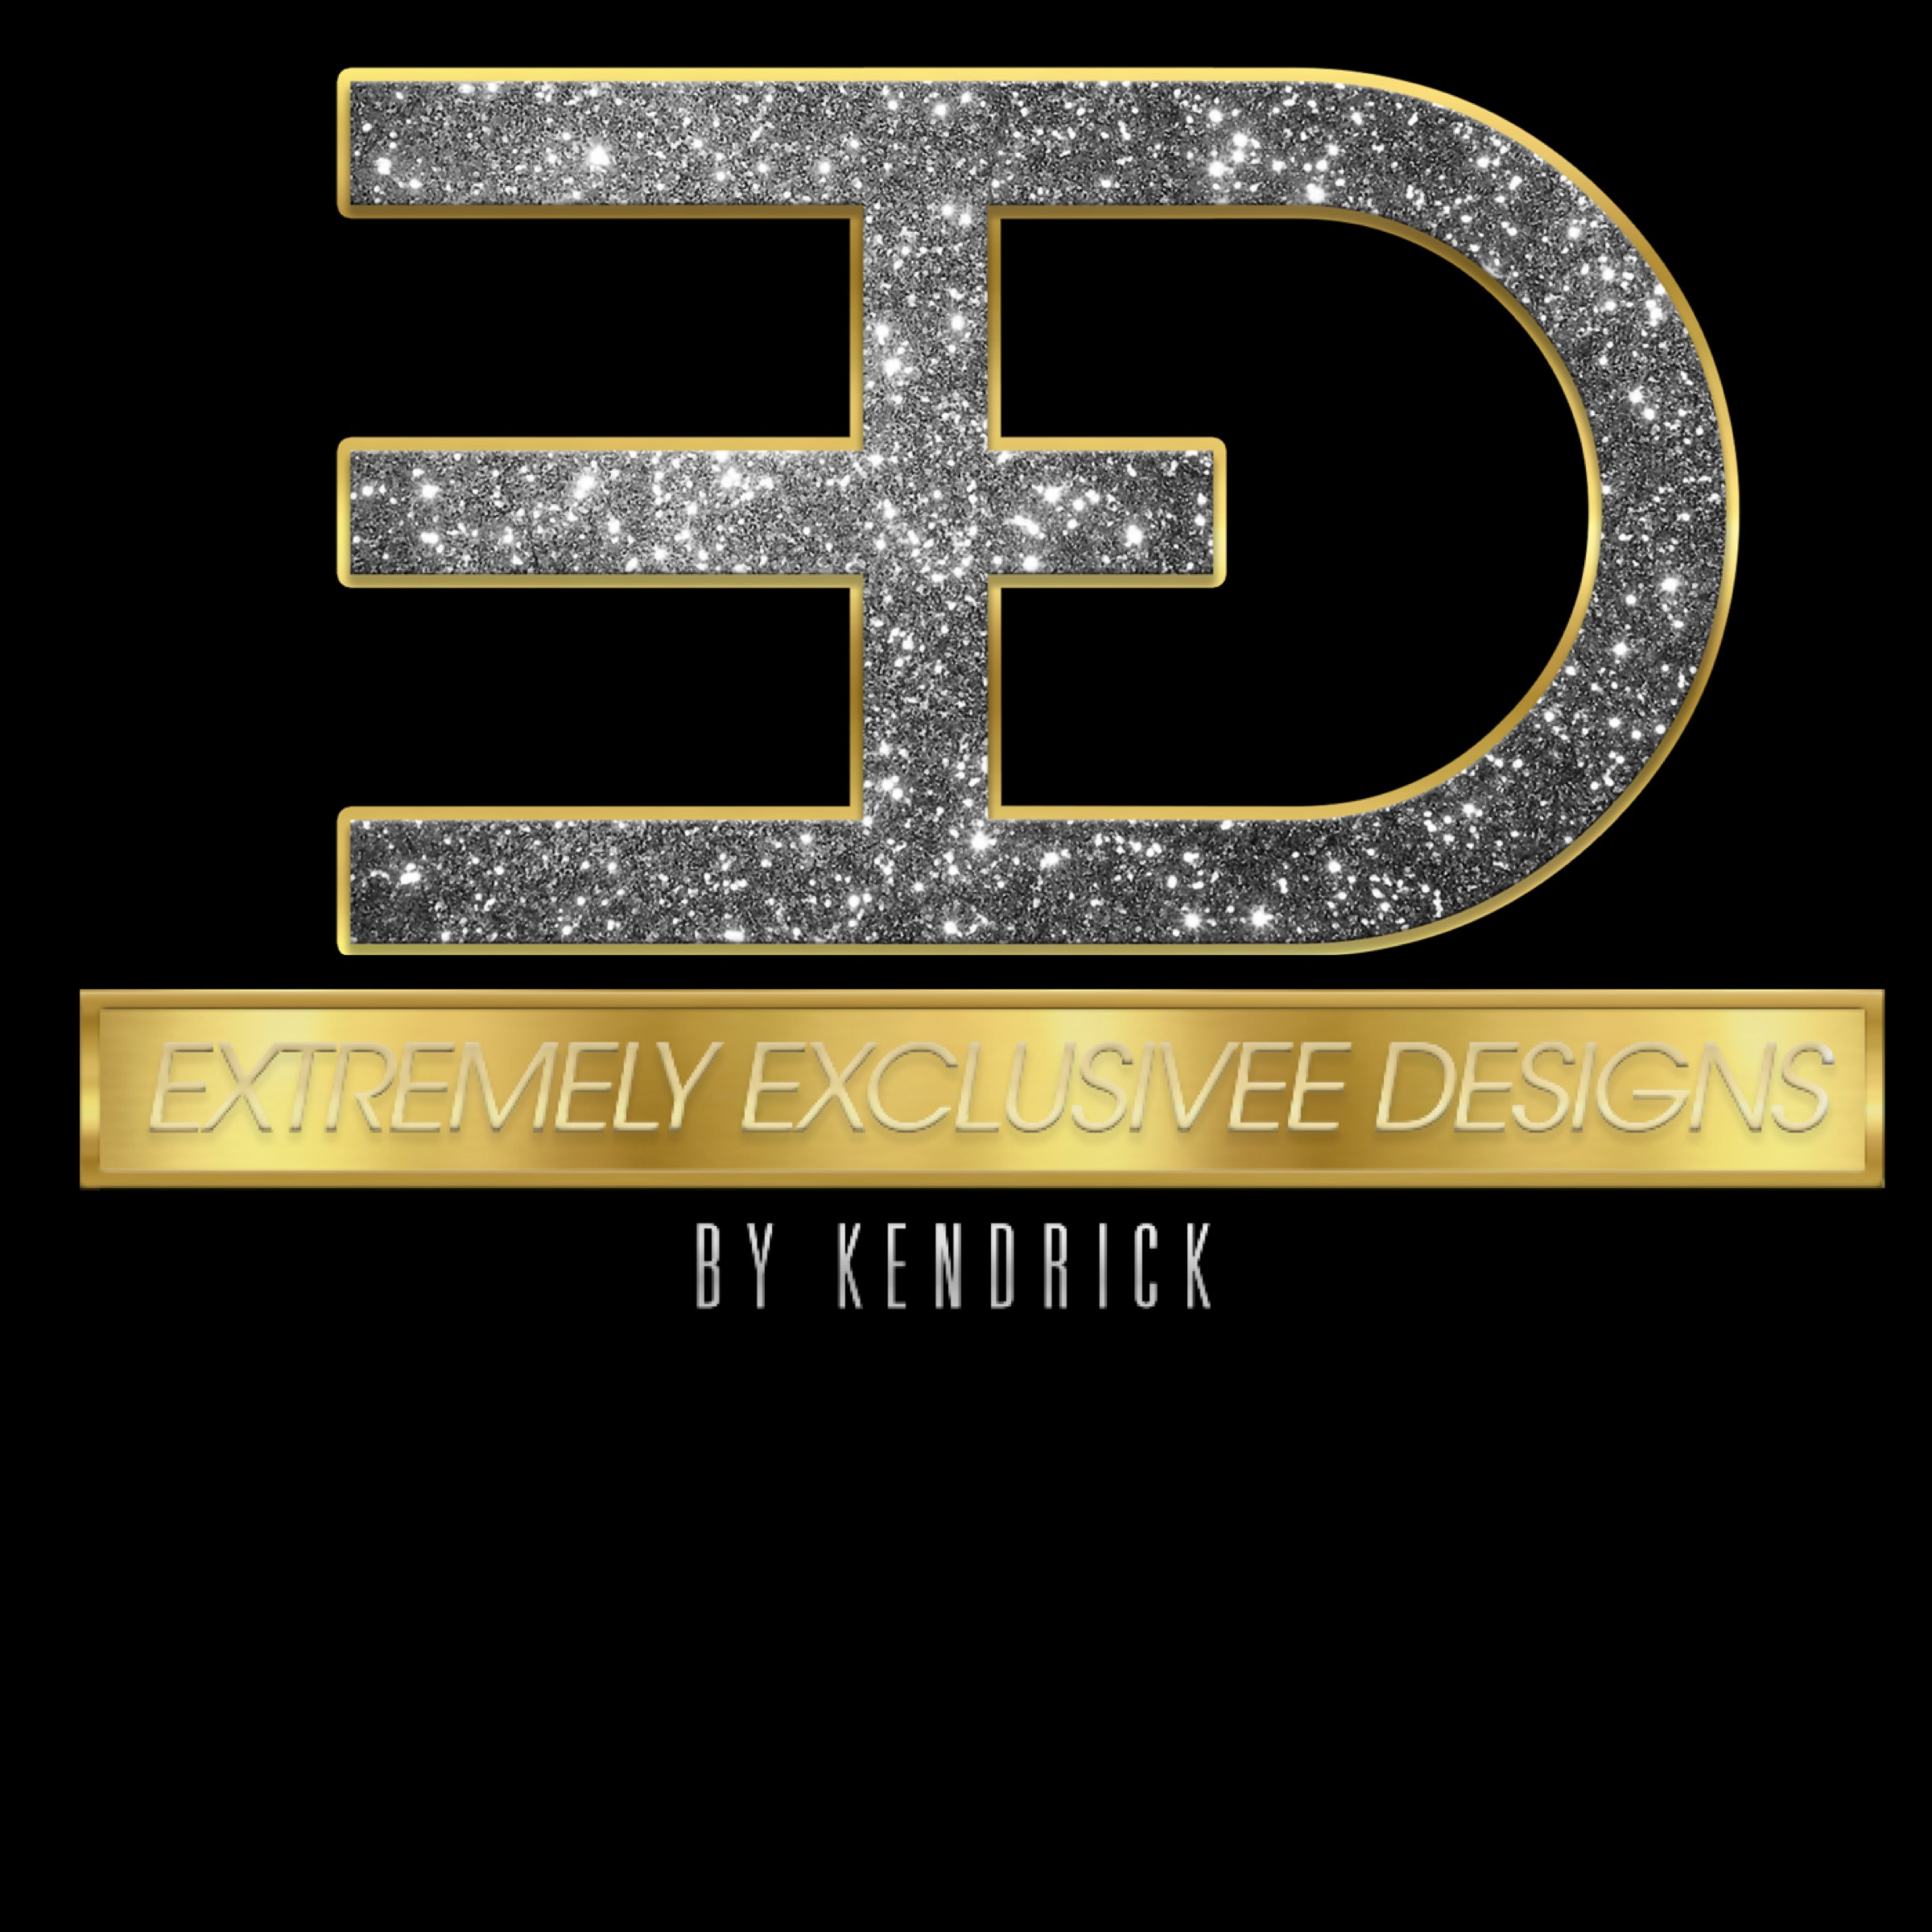 EXTREMELY EXCLUSIVE DESIGNS BY KENDRICK